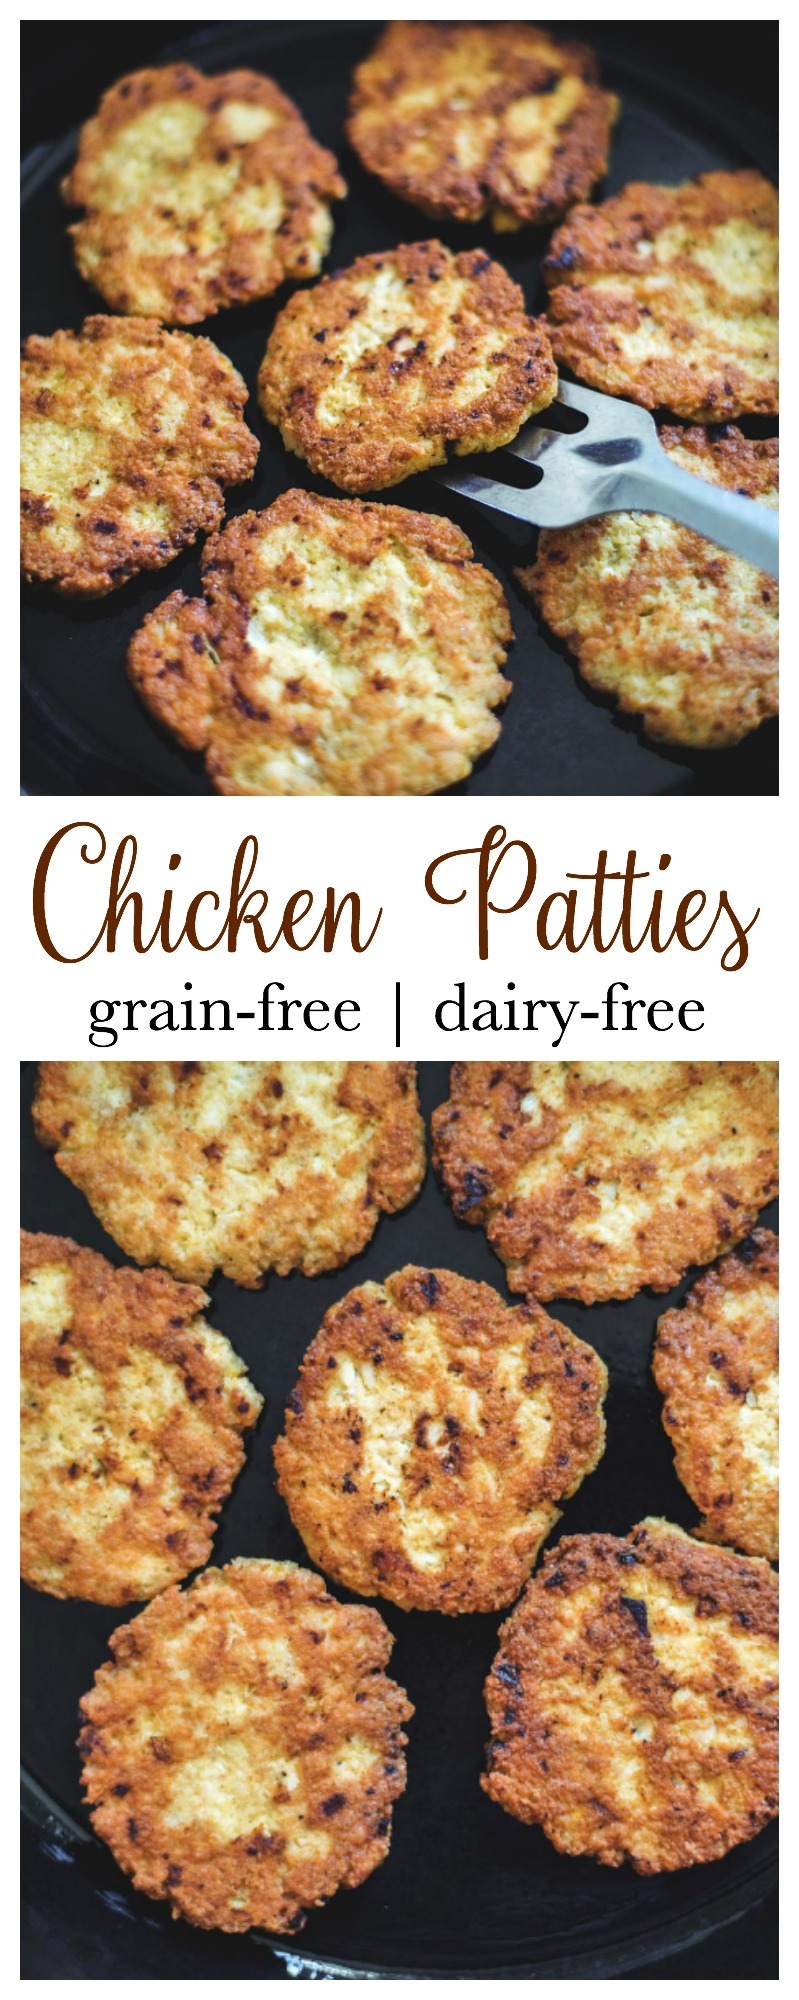 Chicken Patties - grain-free-dairy-free